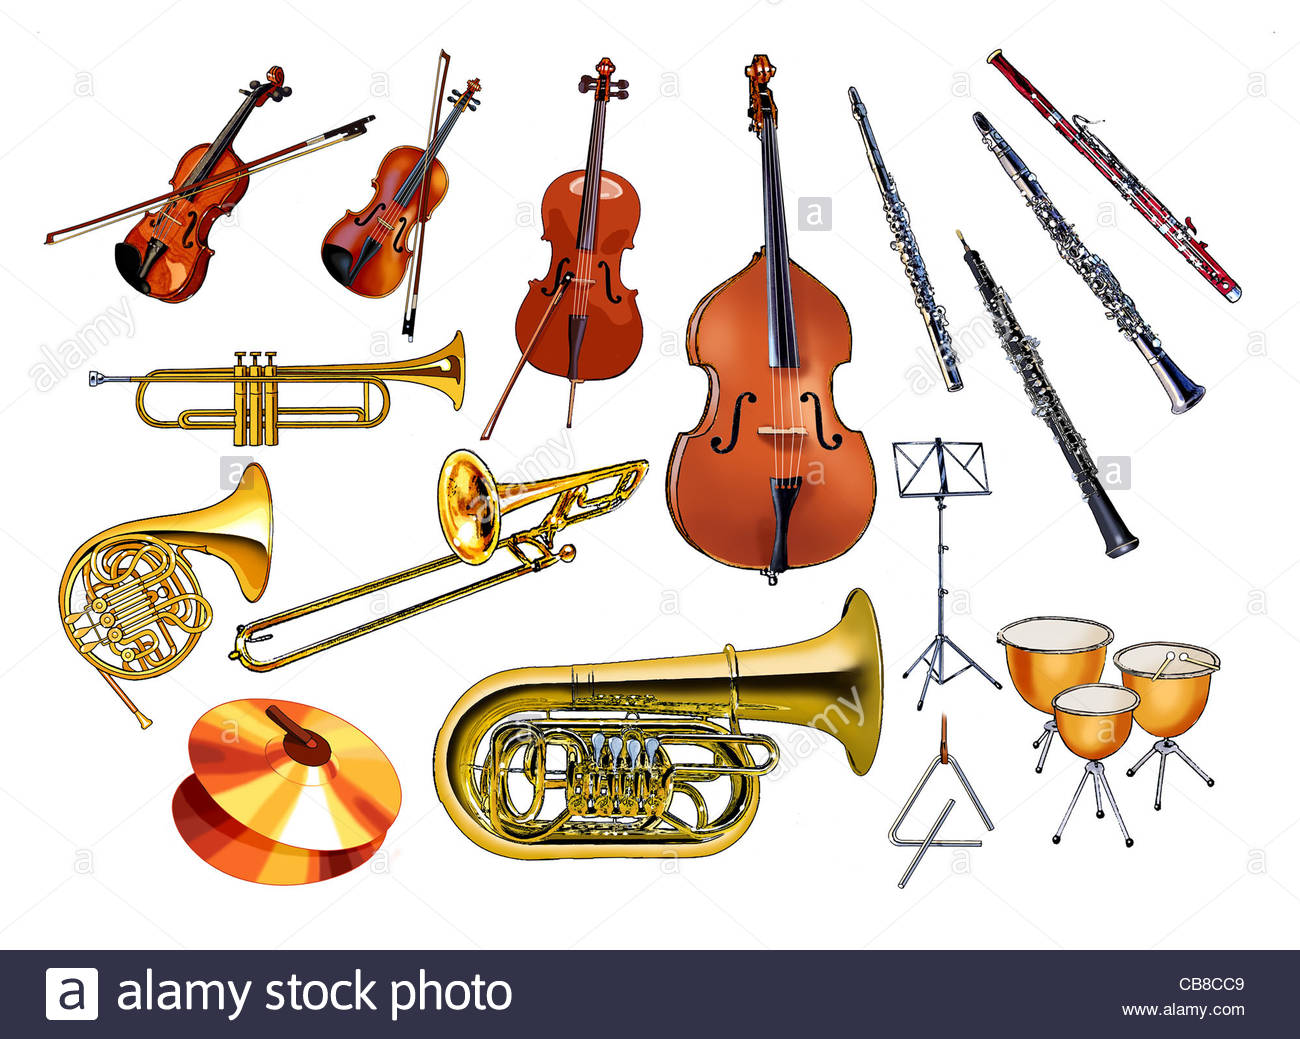 Musical Instruments Orchestra Stock Photo Royalty Free